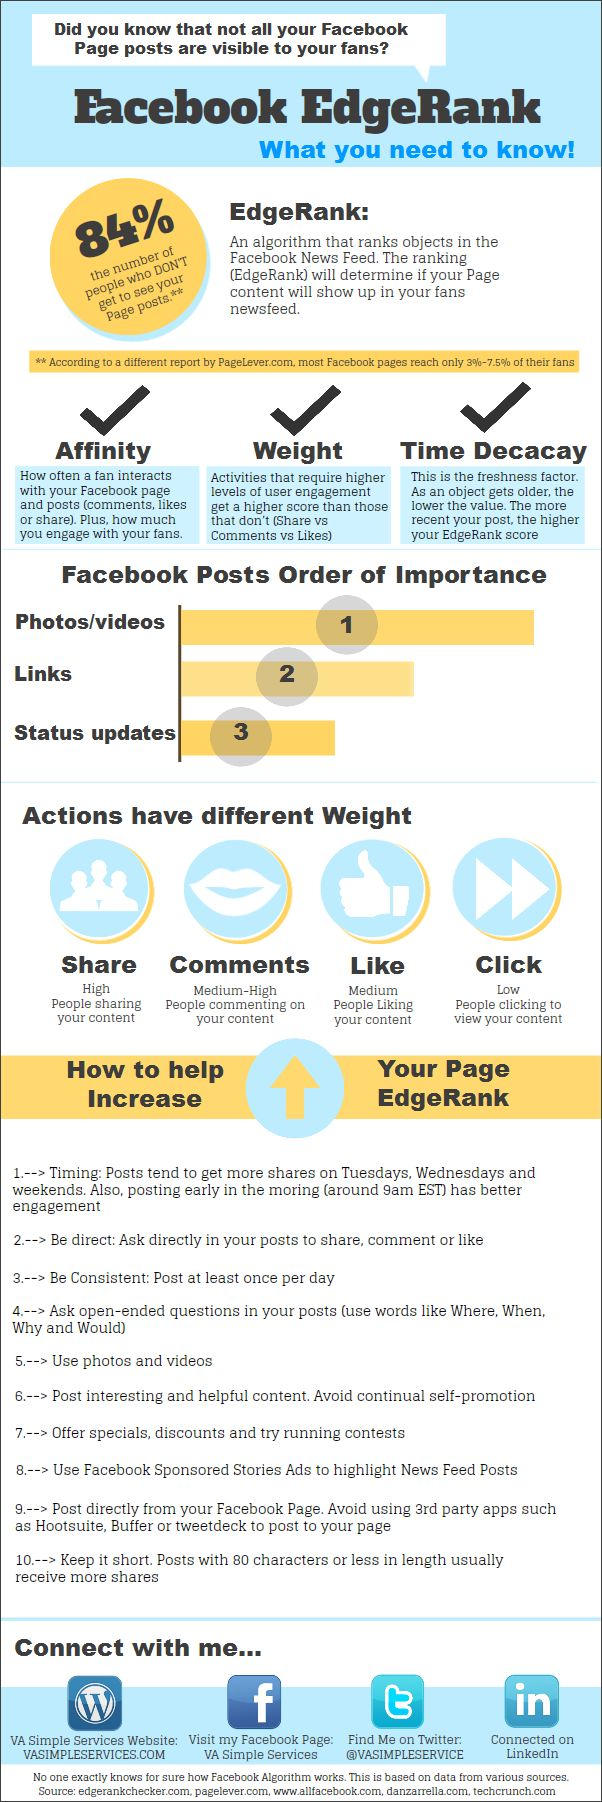 Training Resource for #Virtualoptions #dawnjensen  http://www.fb.me/virtualoptions  http://vasimpleservices.com/wp-content/uploads/2012/04/Facebook-EdgeRank-Infographic1.png